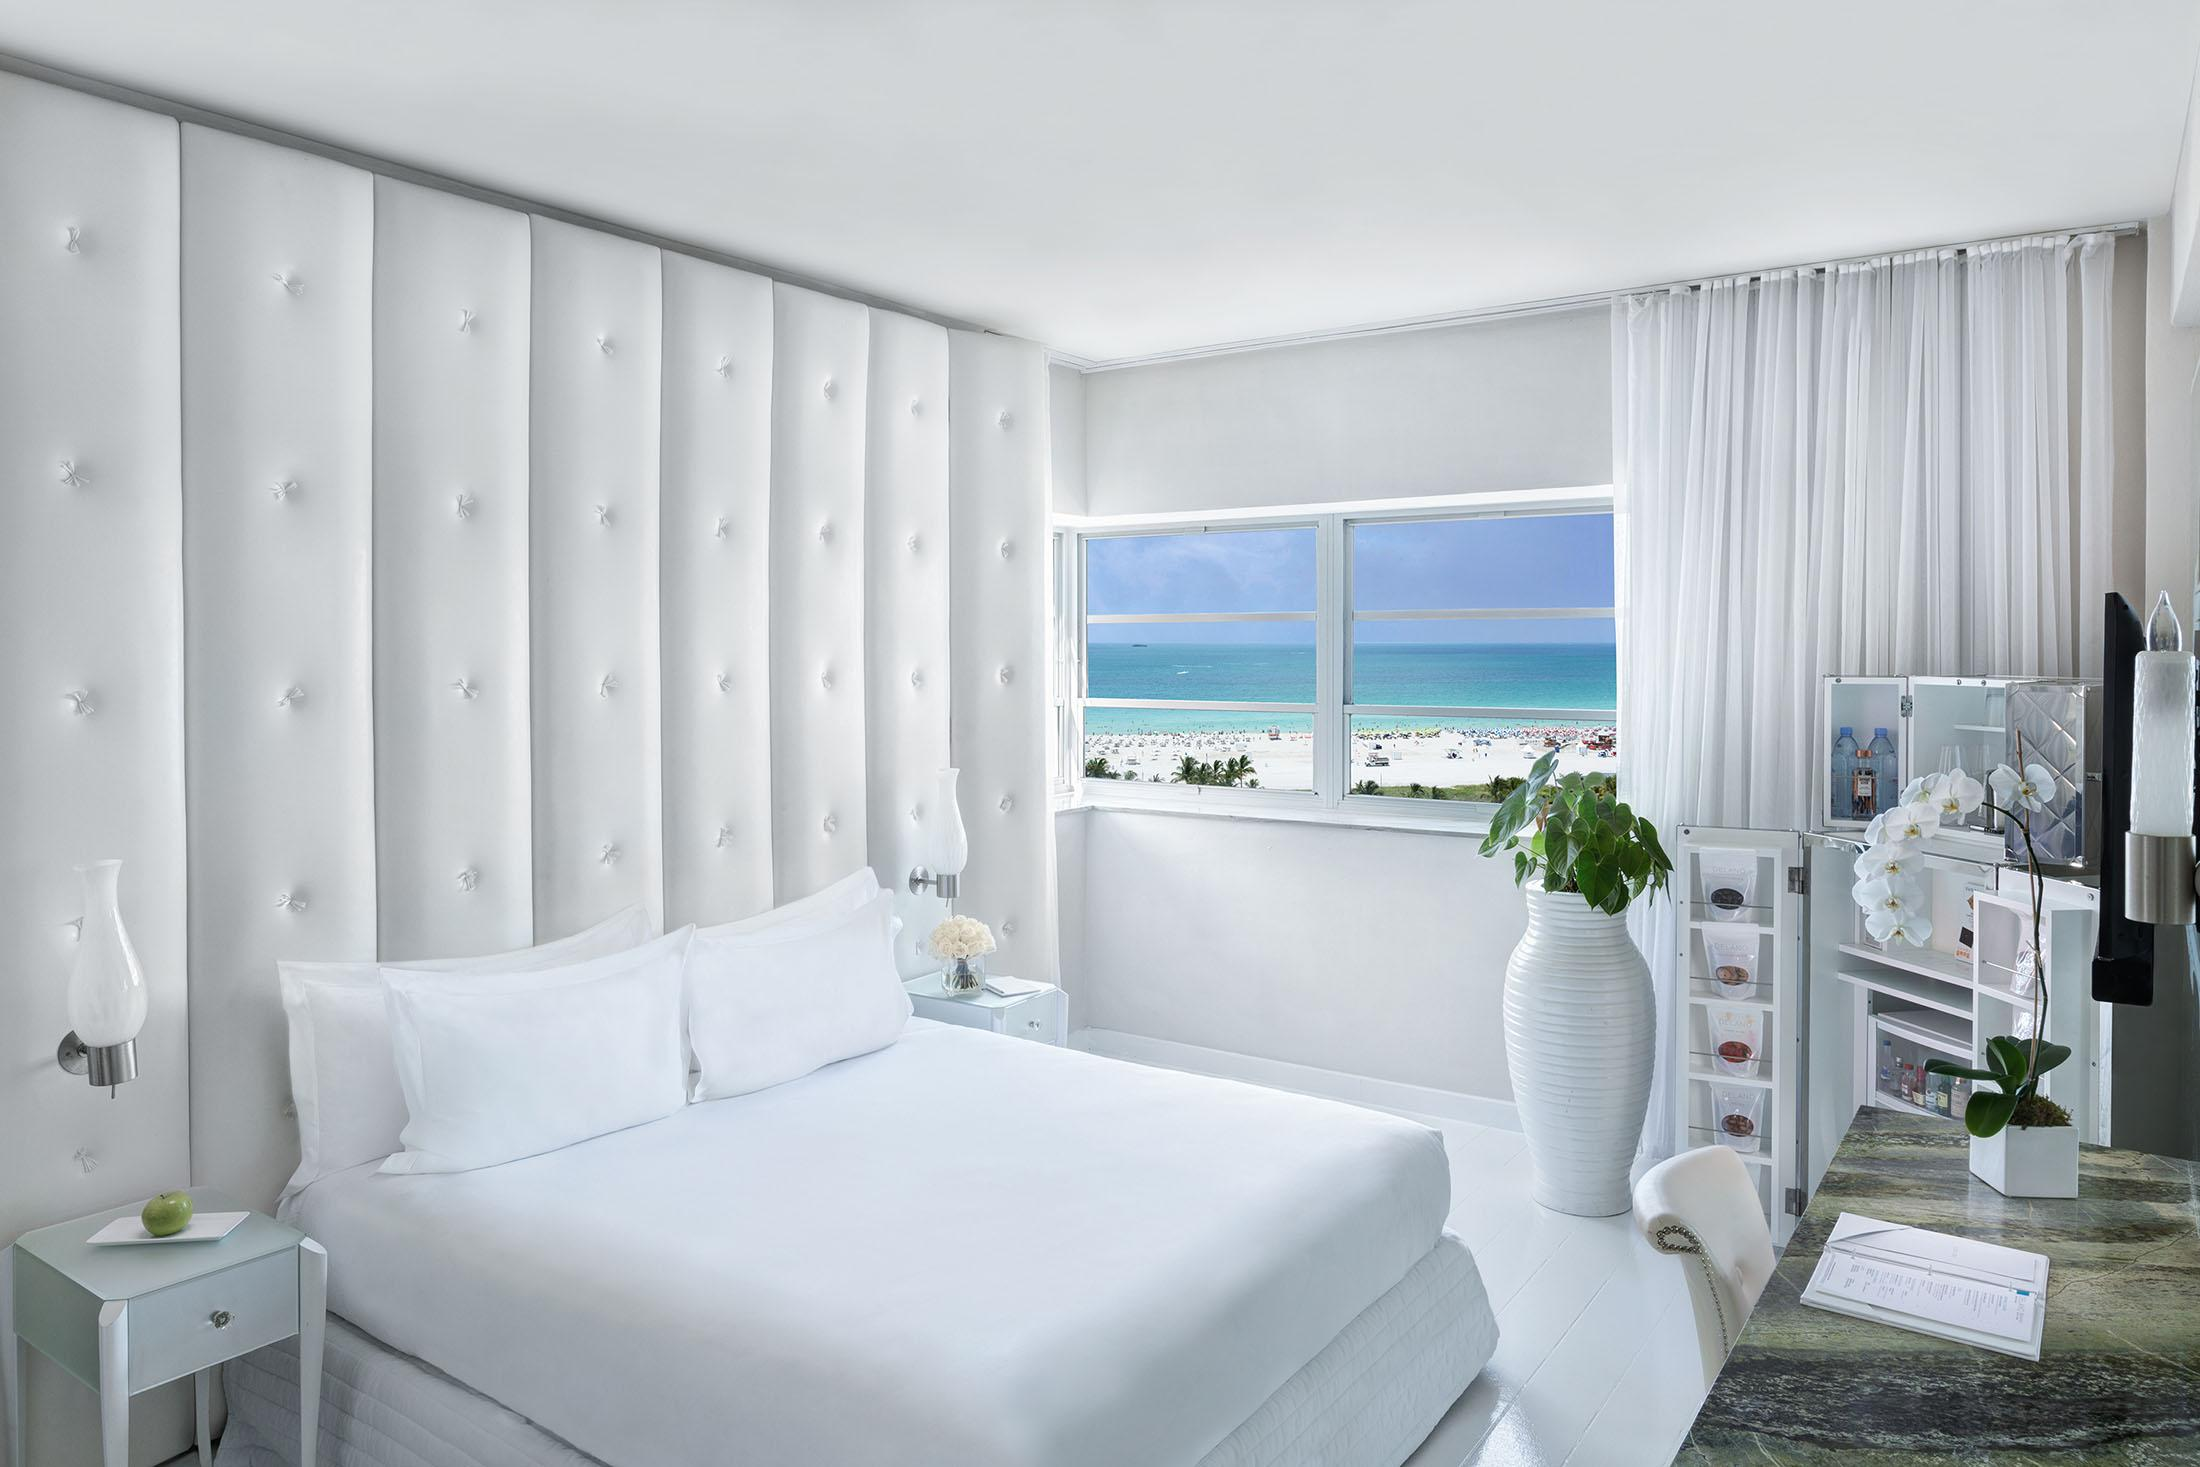 White bed in front of window with ocean view